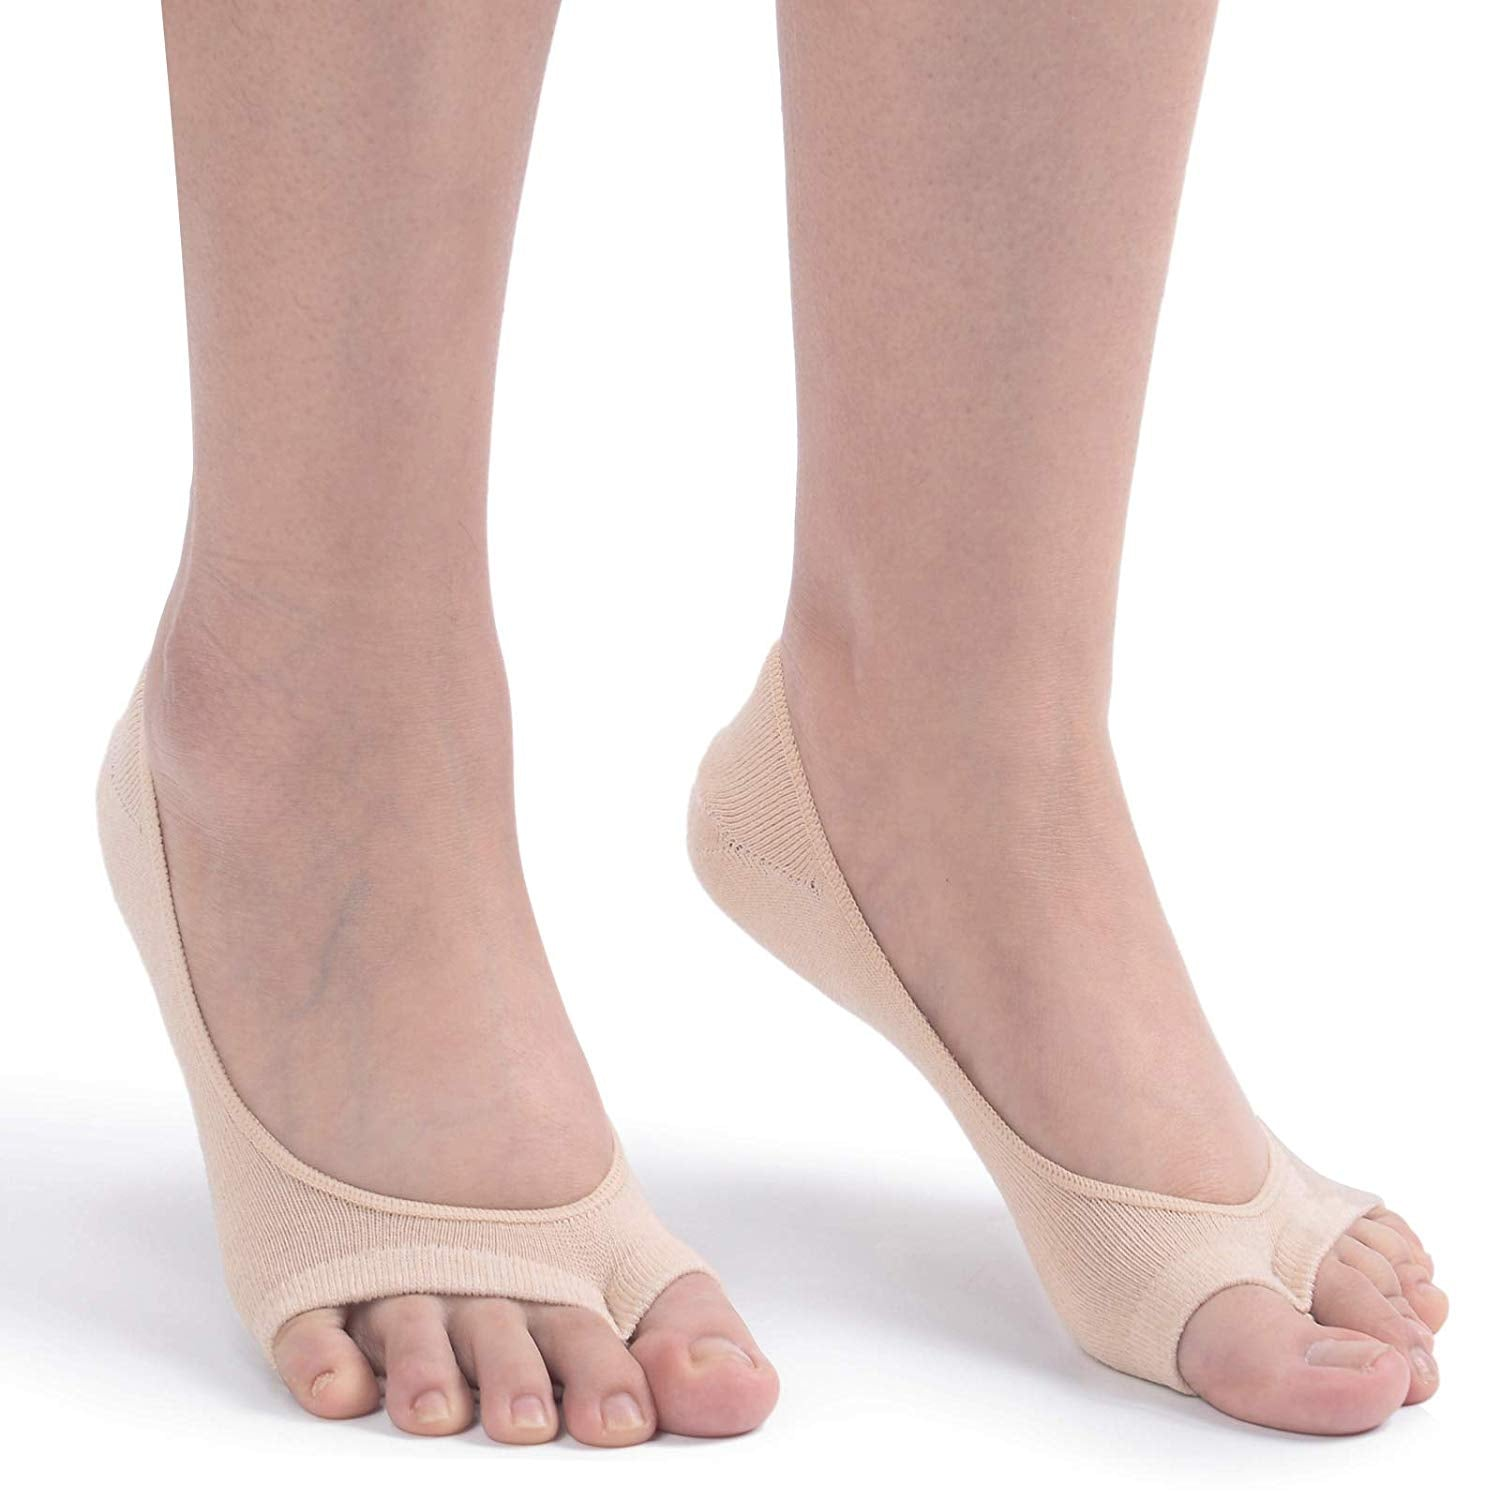 Women's 3/6 Pairs Peep Toe Liner Socks 【70% OFF LIMITED TIME】